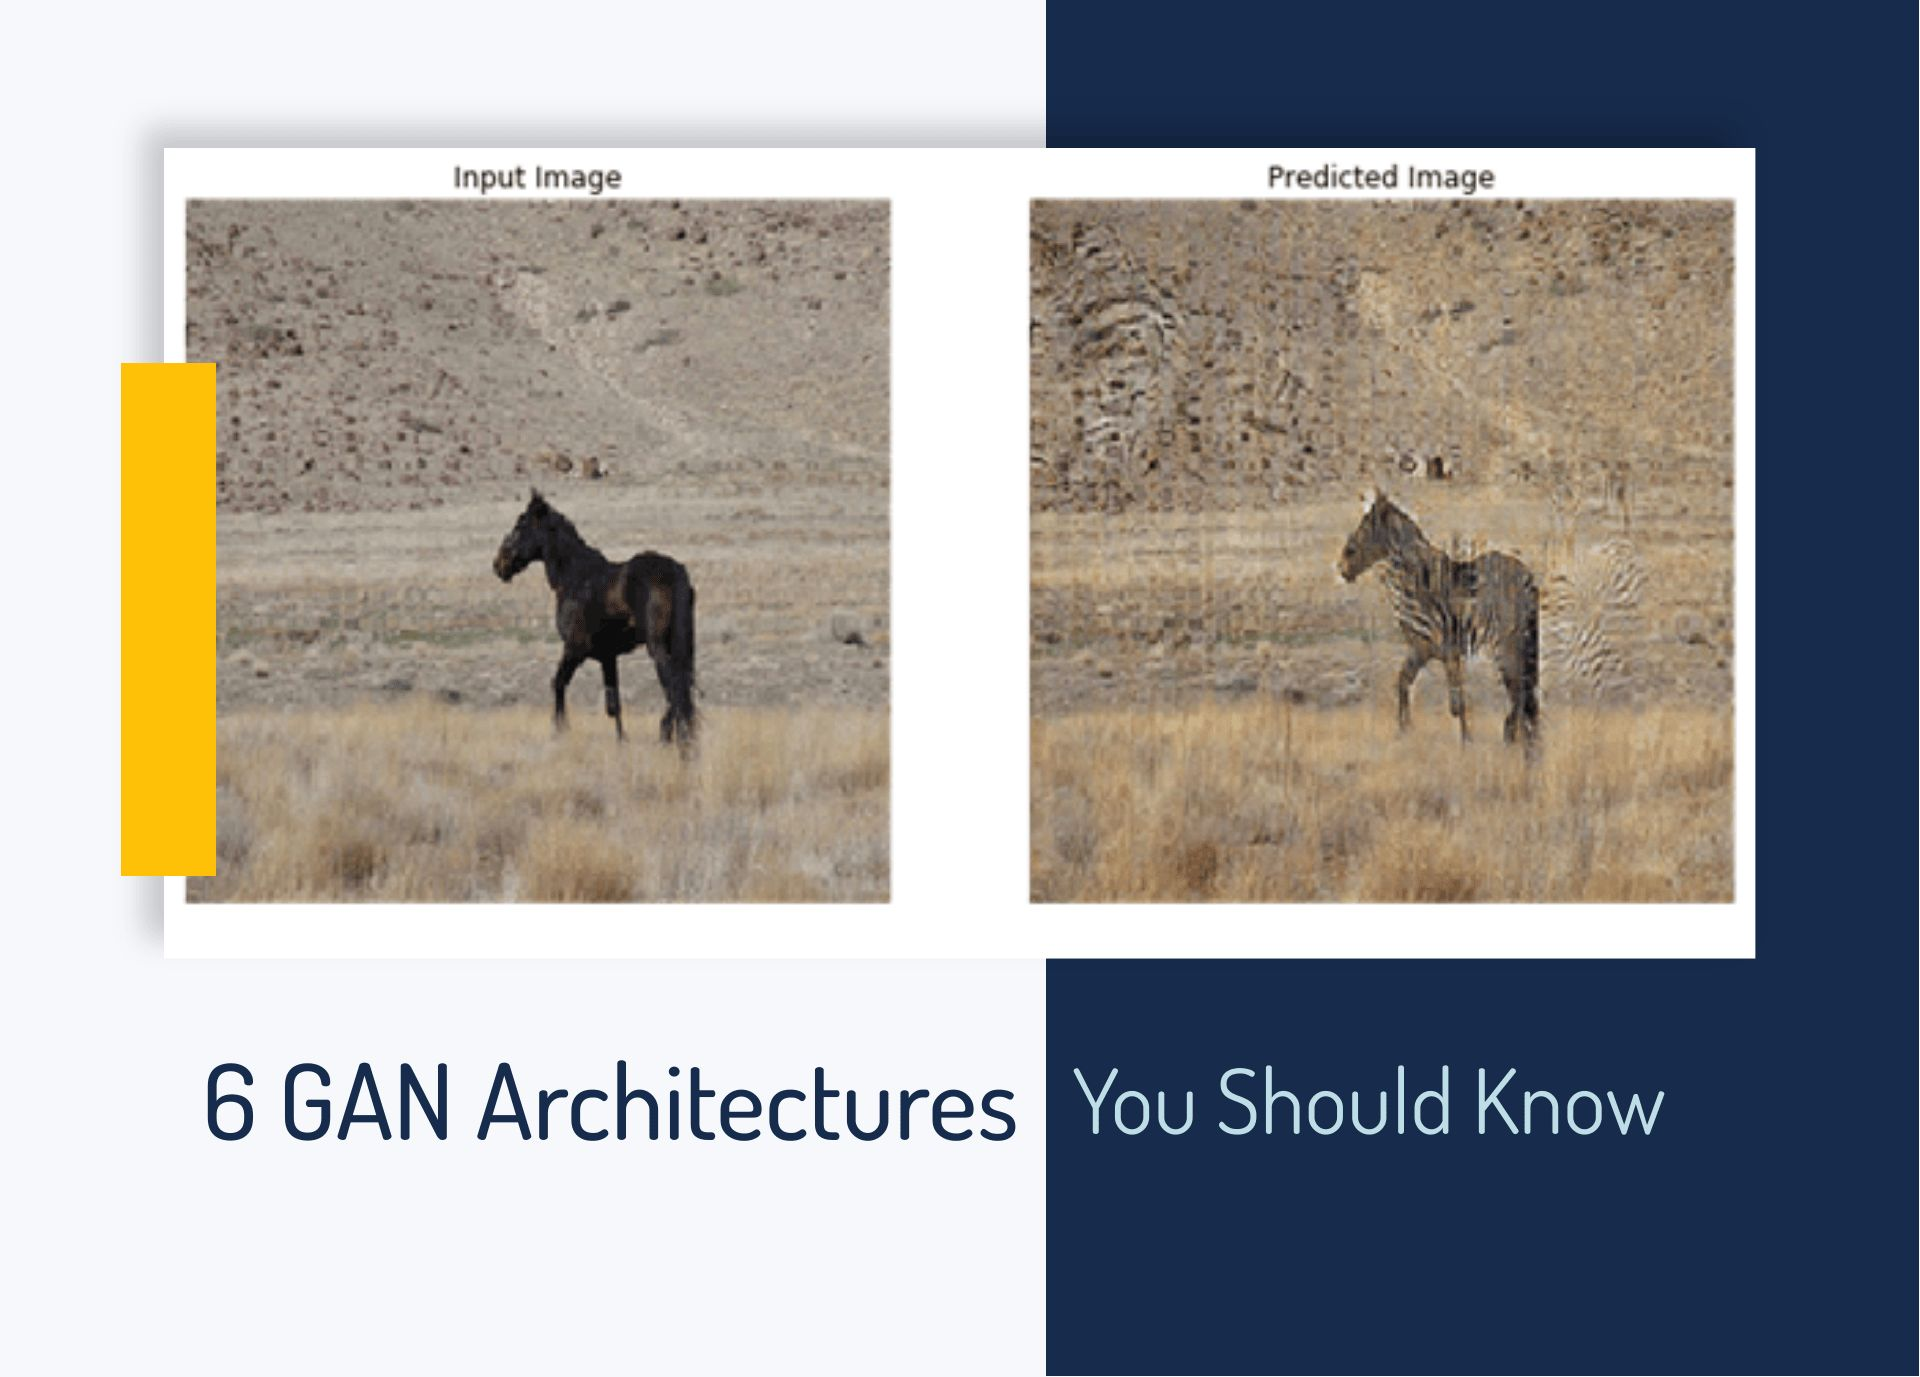 /6-gan-architectures-you-really-should-know-ncw3up9 feature image